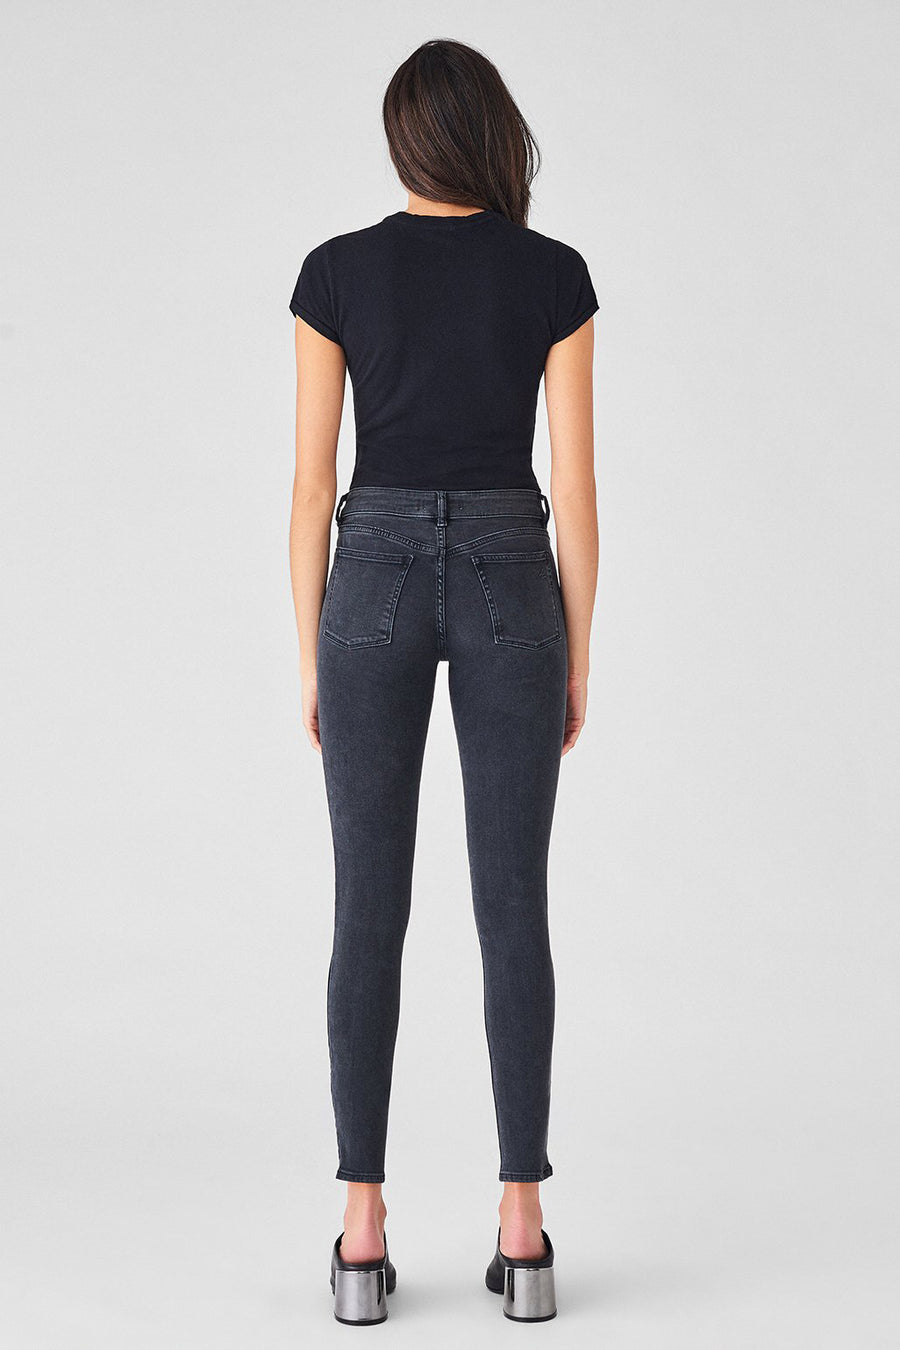 Margaux Mid Rise Ankle Skinny - Morrison